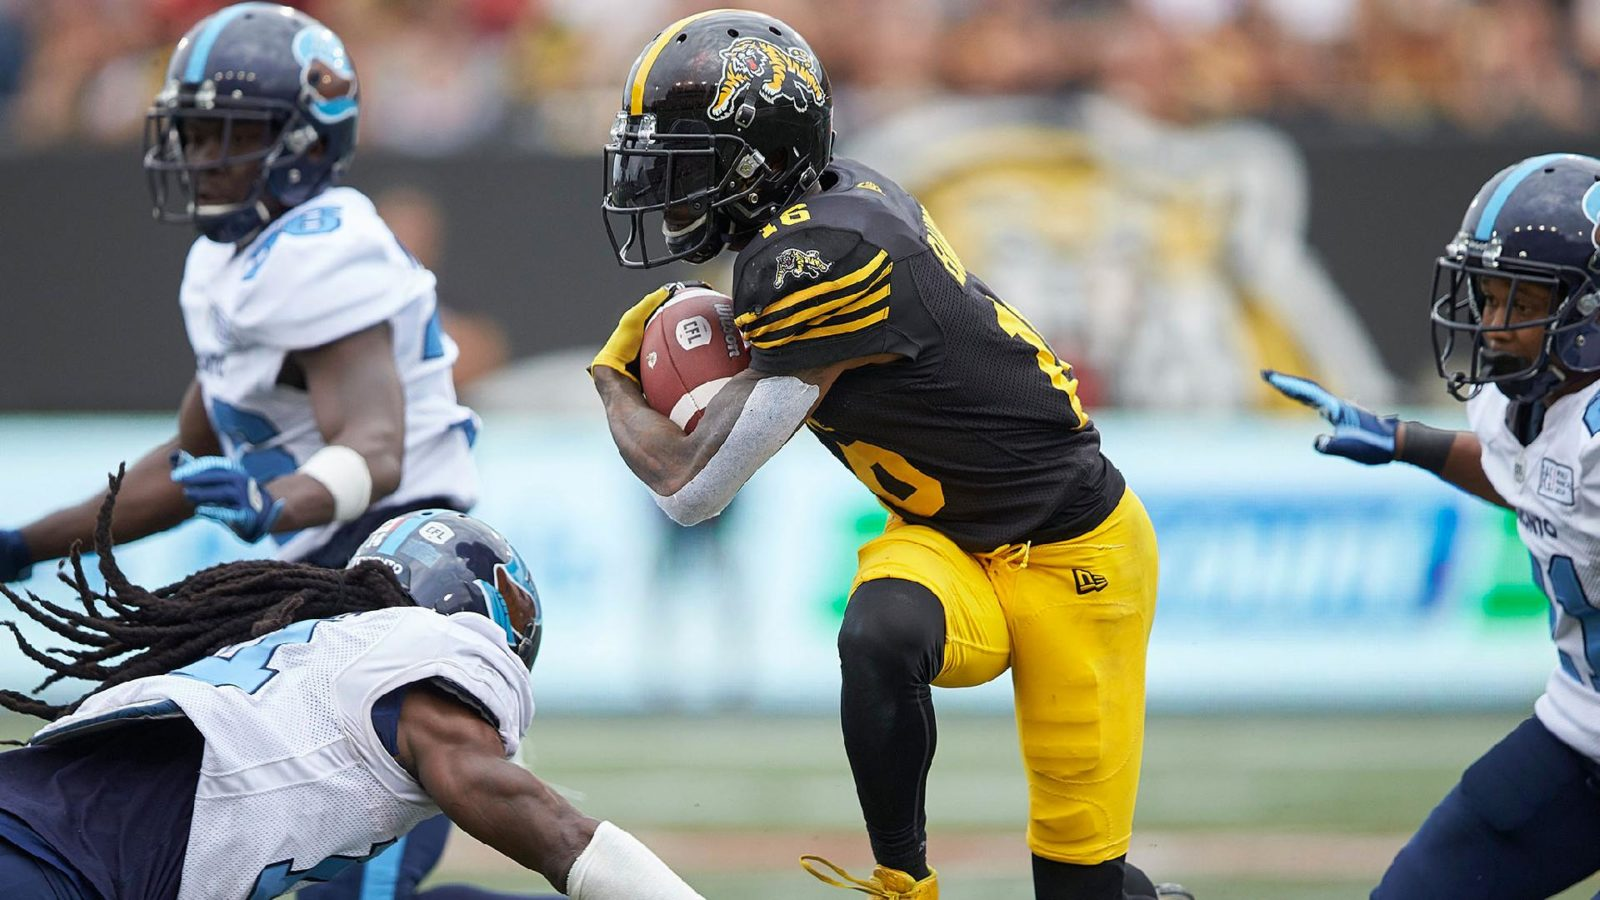 EF: Hamilton looking to add new wrinkles during closed practice - CFL.ca